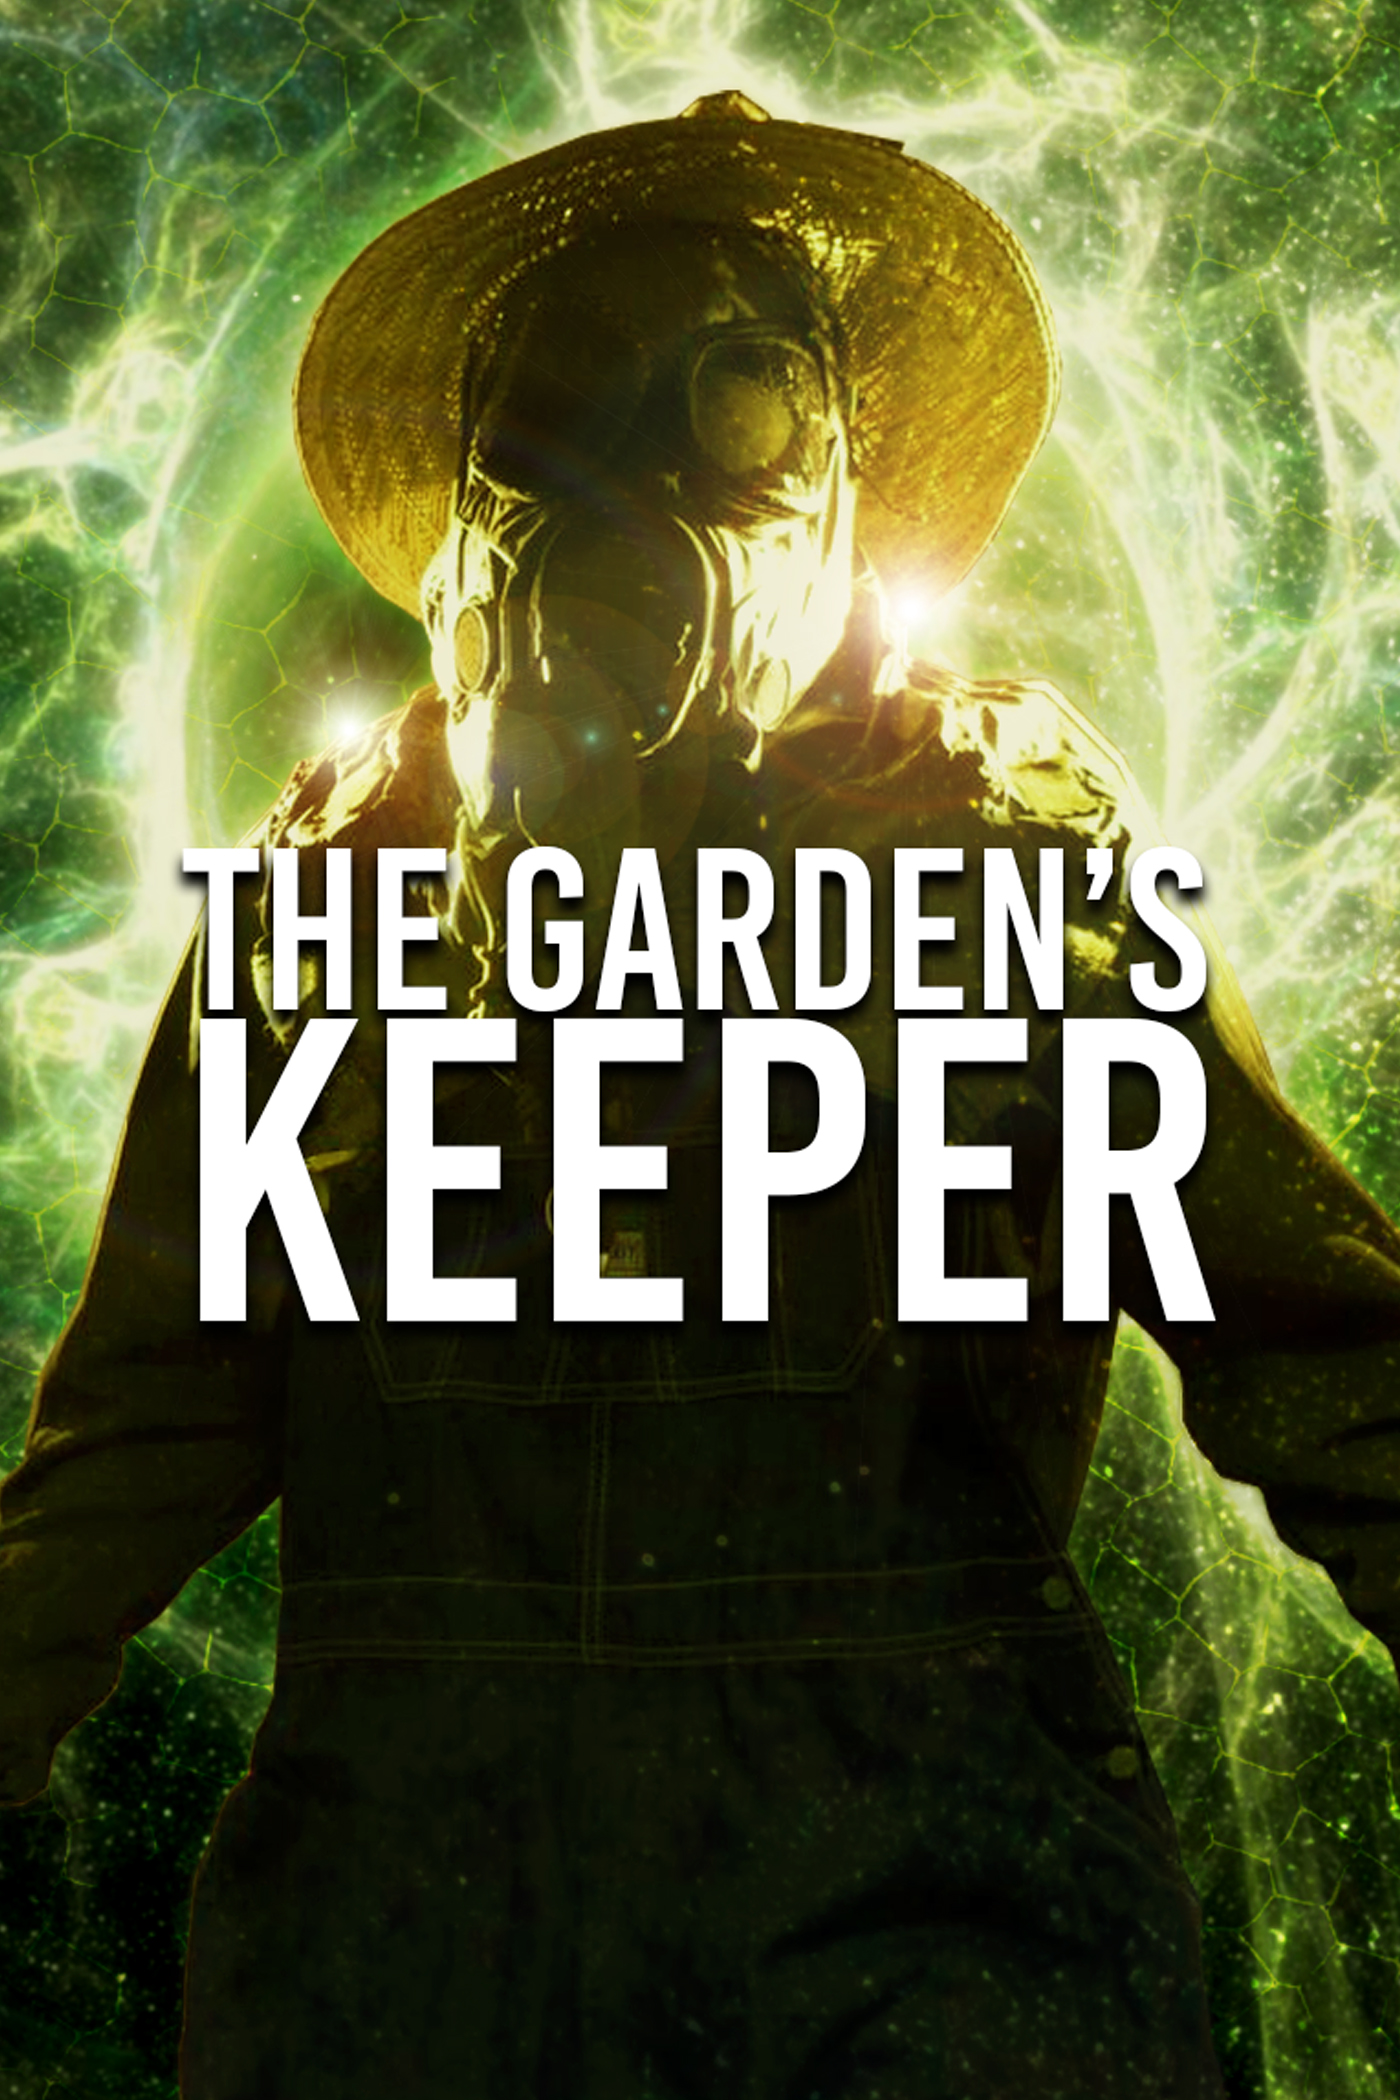 The Garden's Keeper on FREECABLE TV